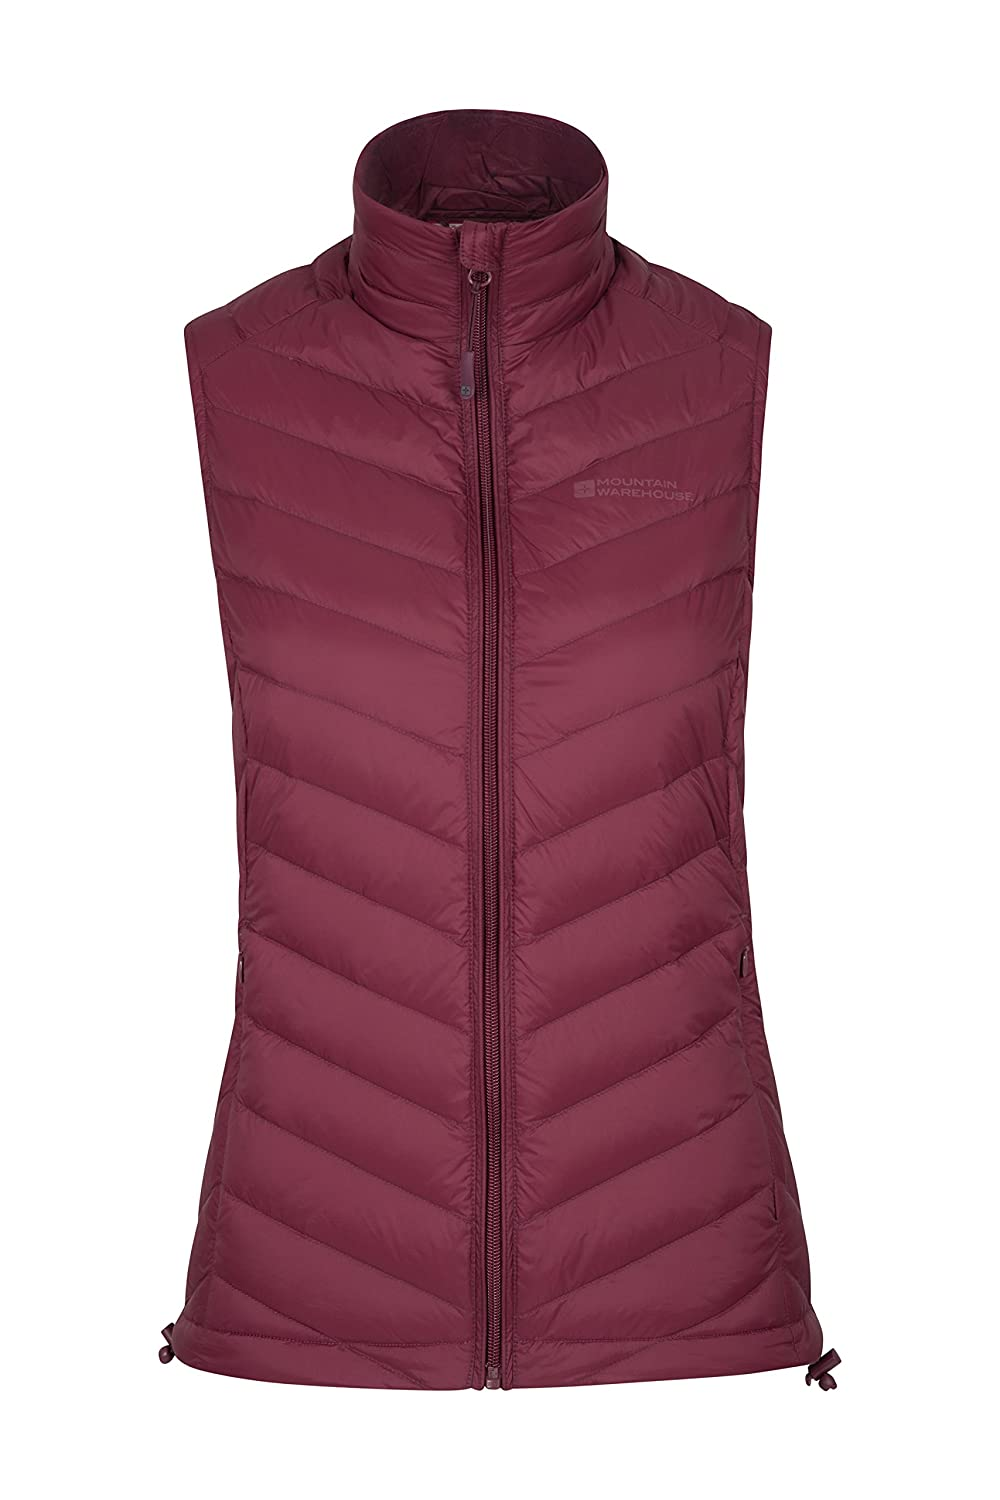 Mountain Warehouse Featherweight Womens Down Gilet -Ladies Gilet Vest